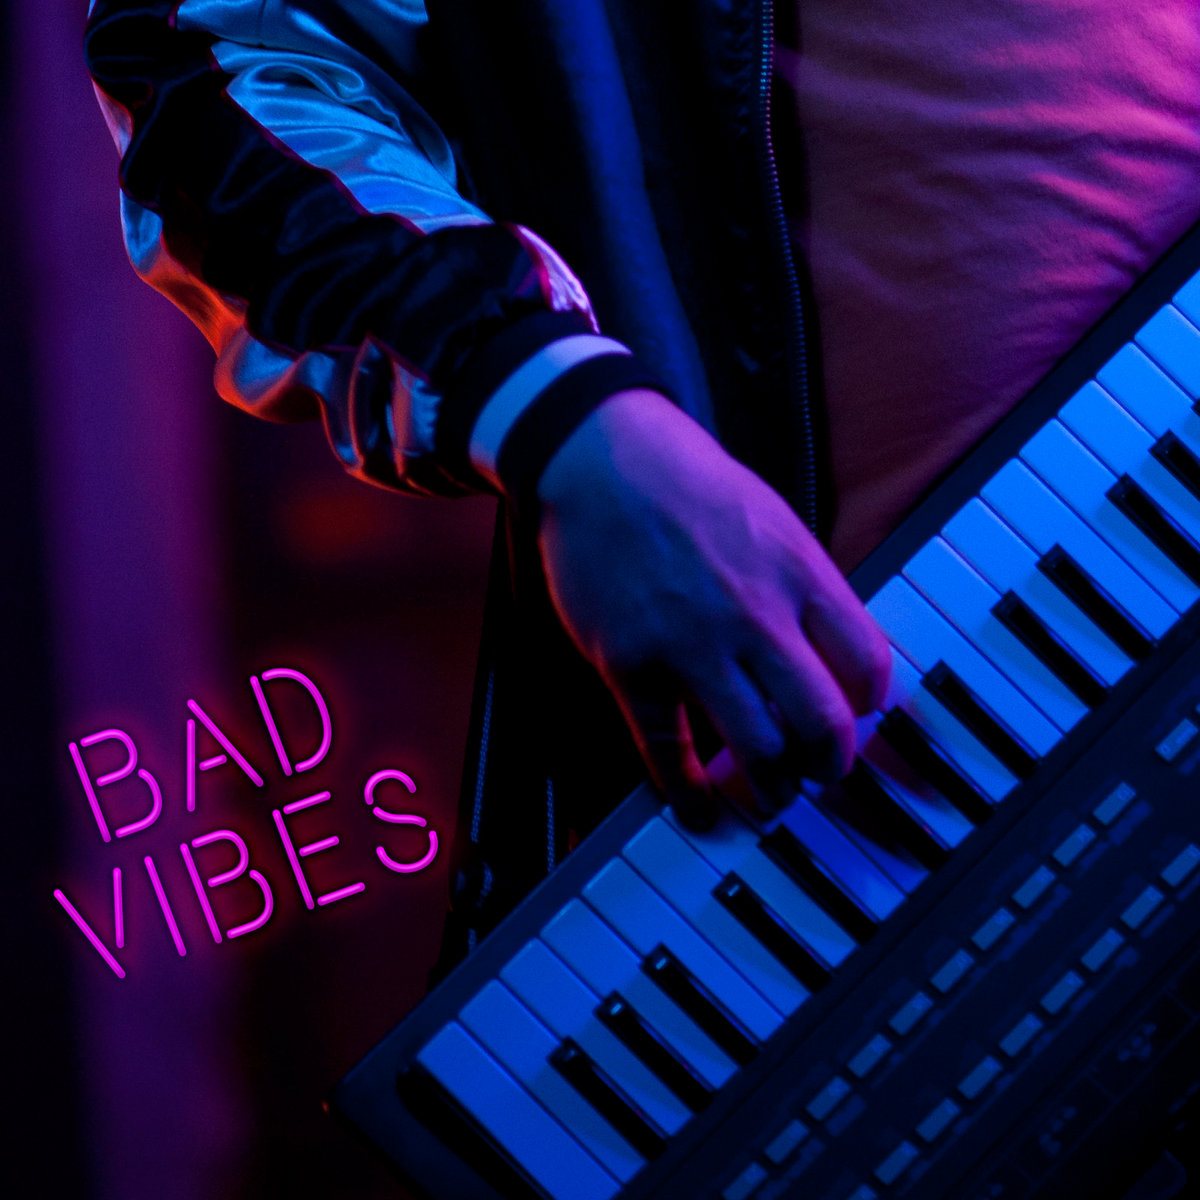 Bad Vibes by Azz